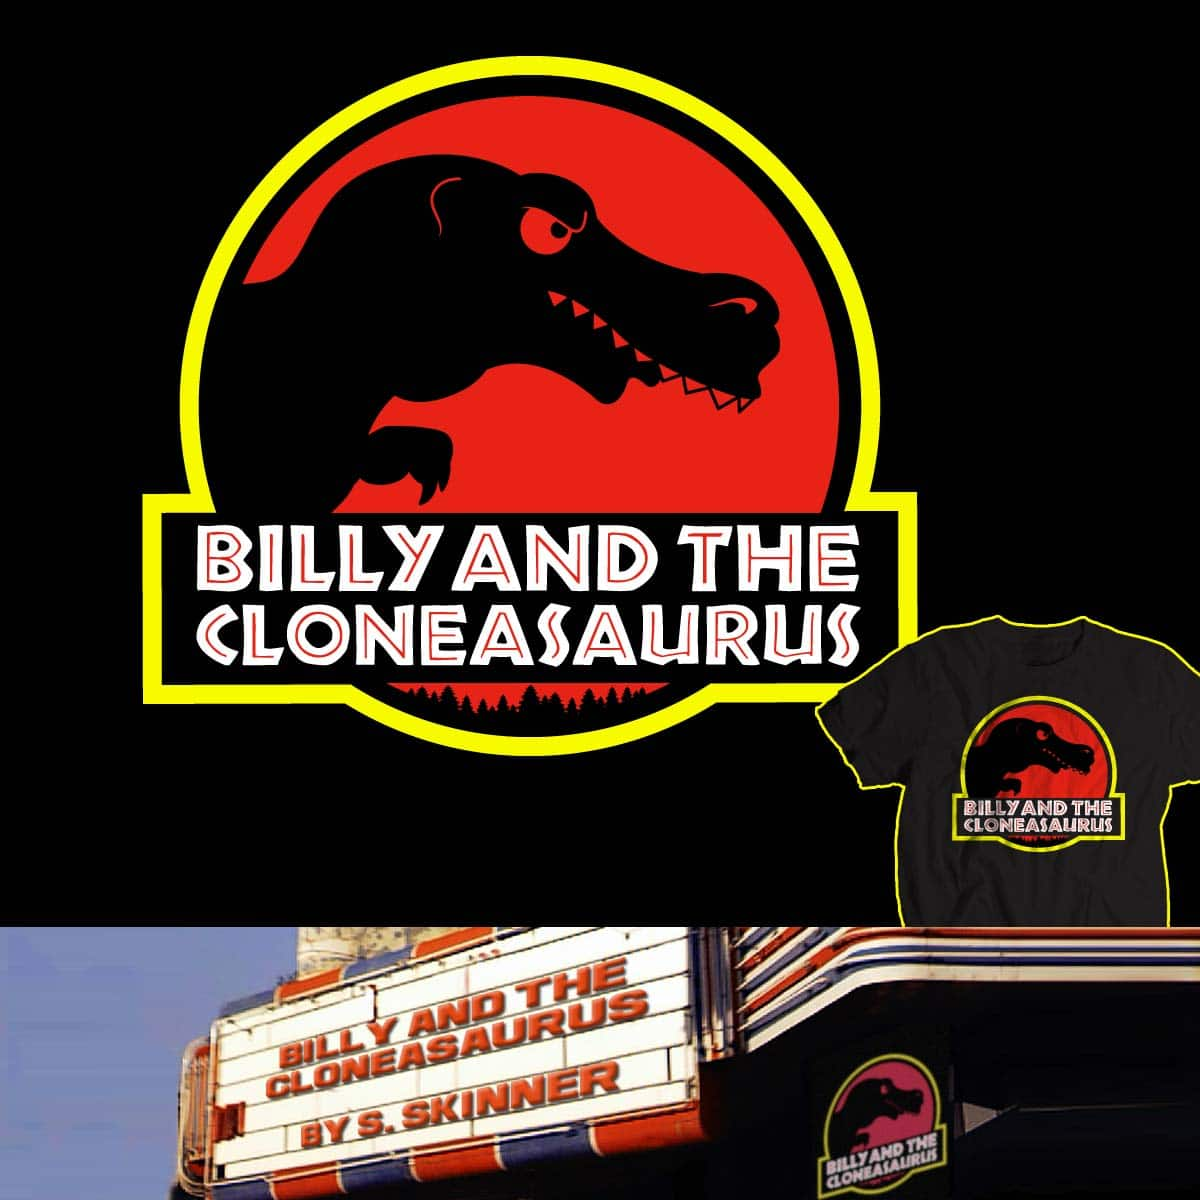 Billy and the Cloneasaurus by FRICKINAWESOME and Papaprime on Threadless